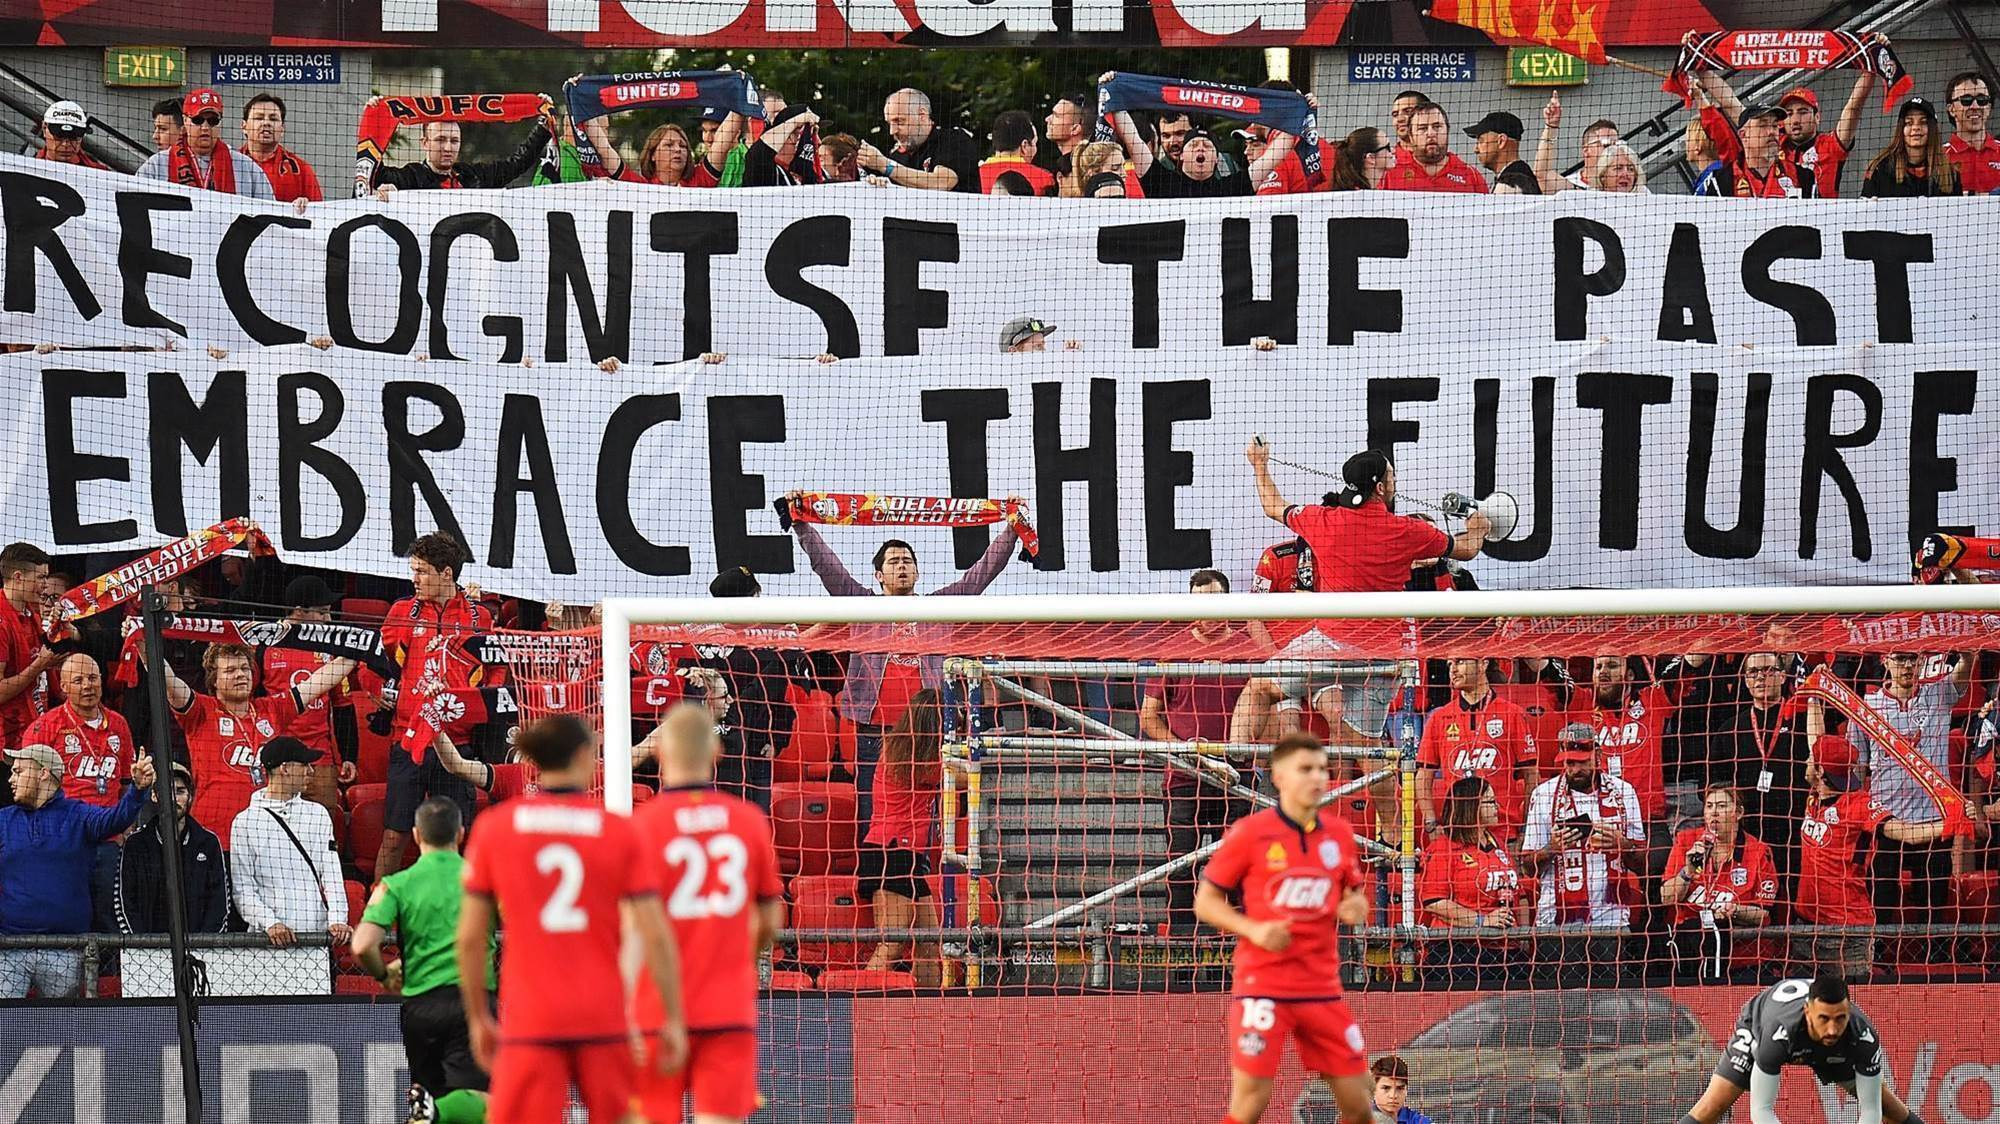 Blood, sweat and tears: gallery of A-League round 4 action